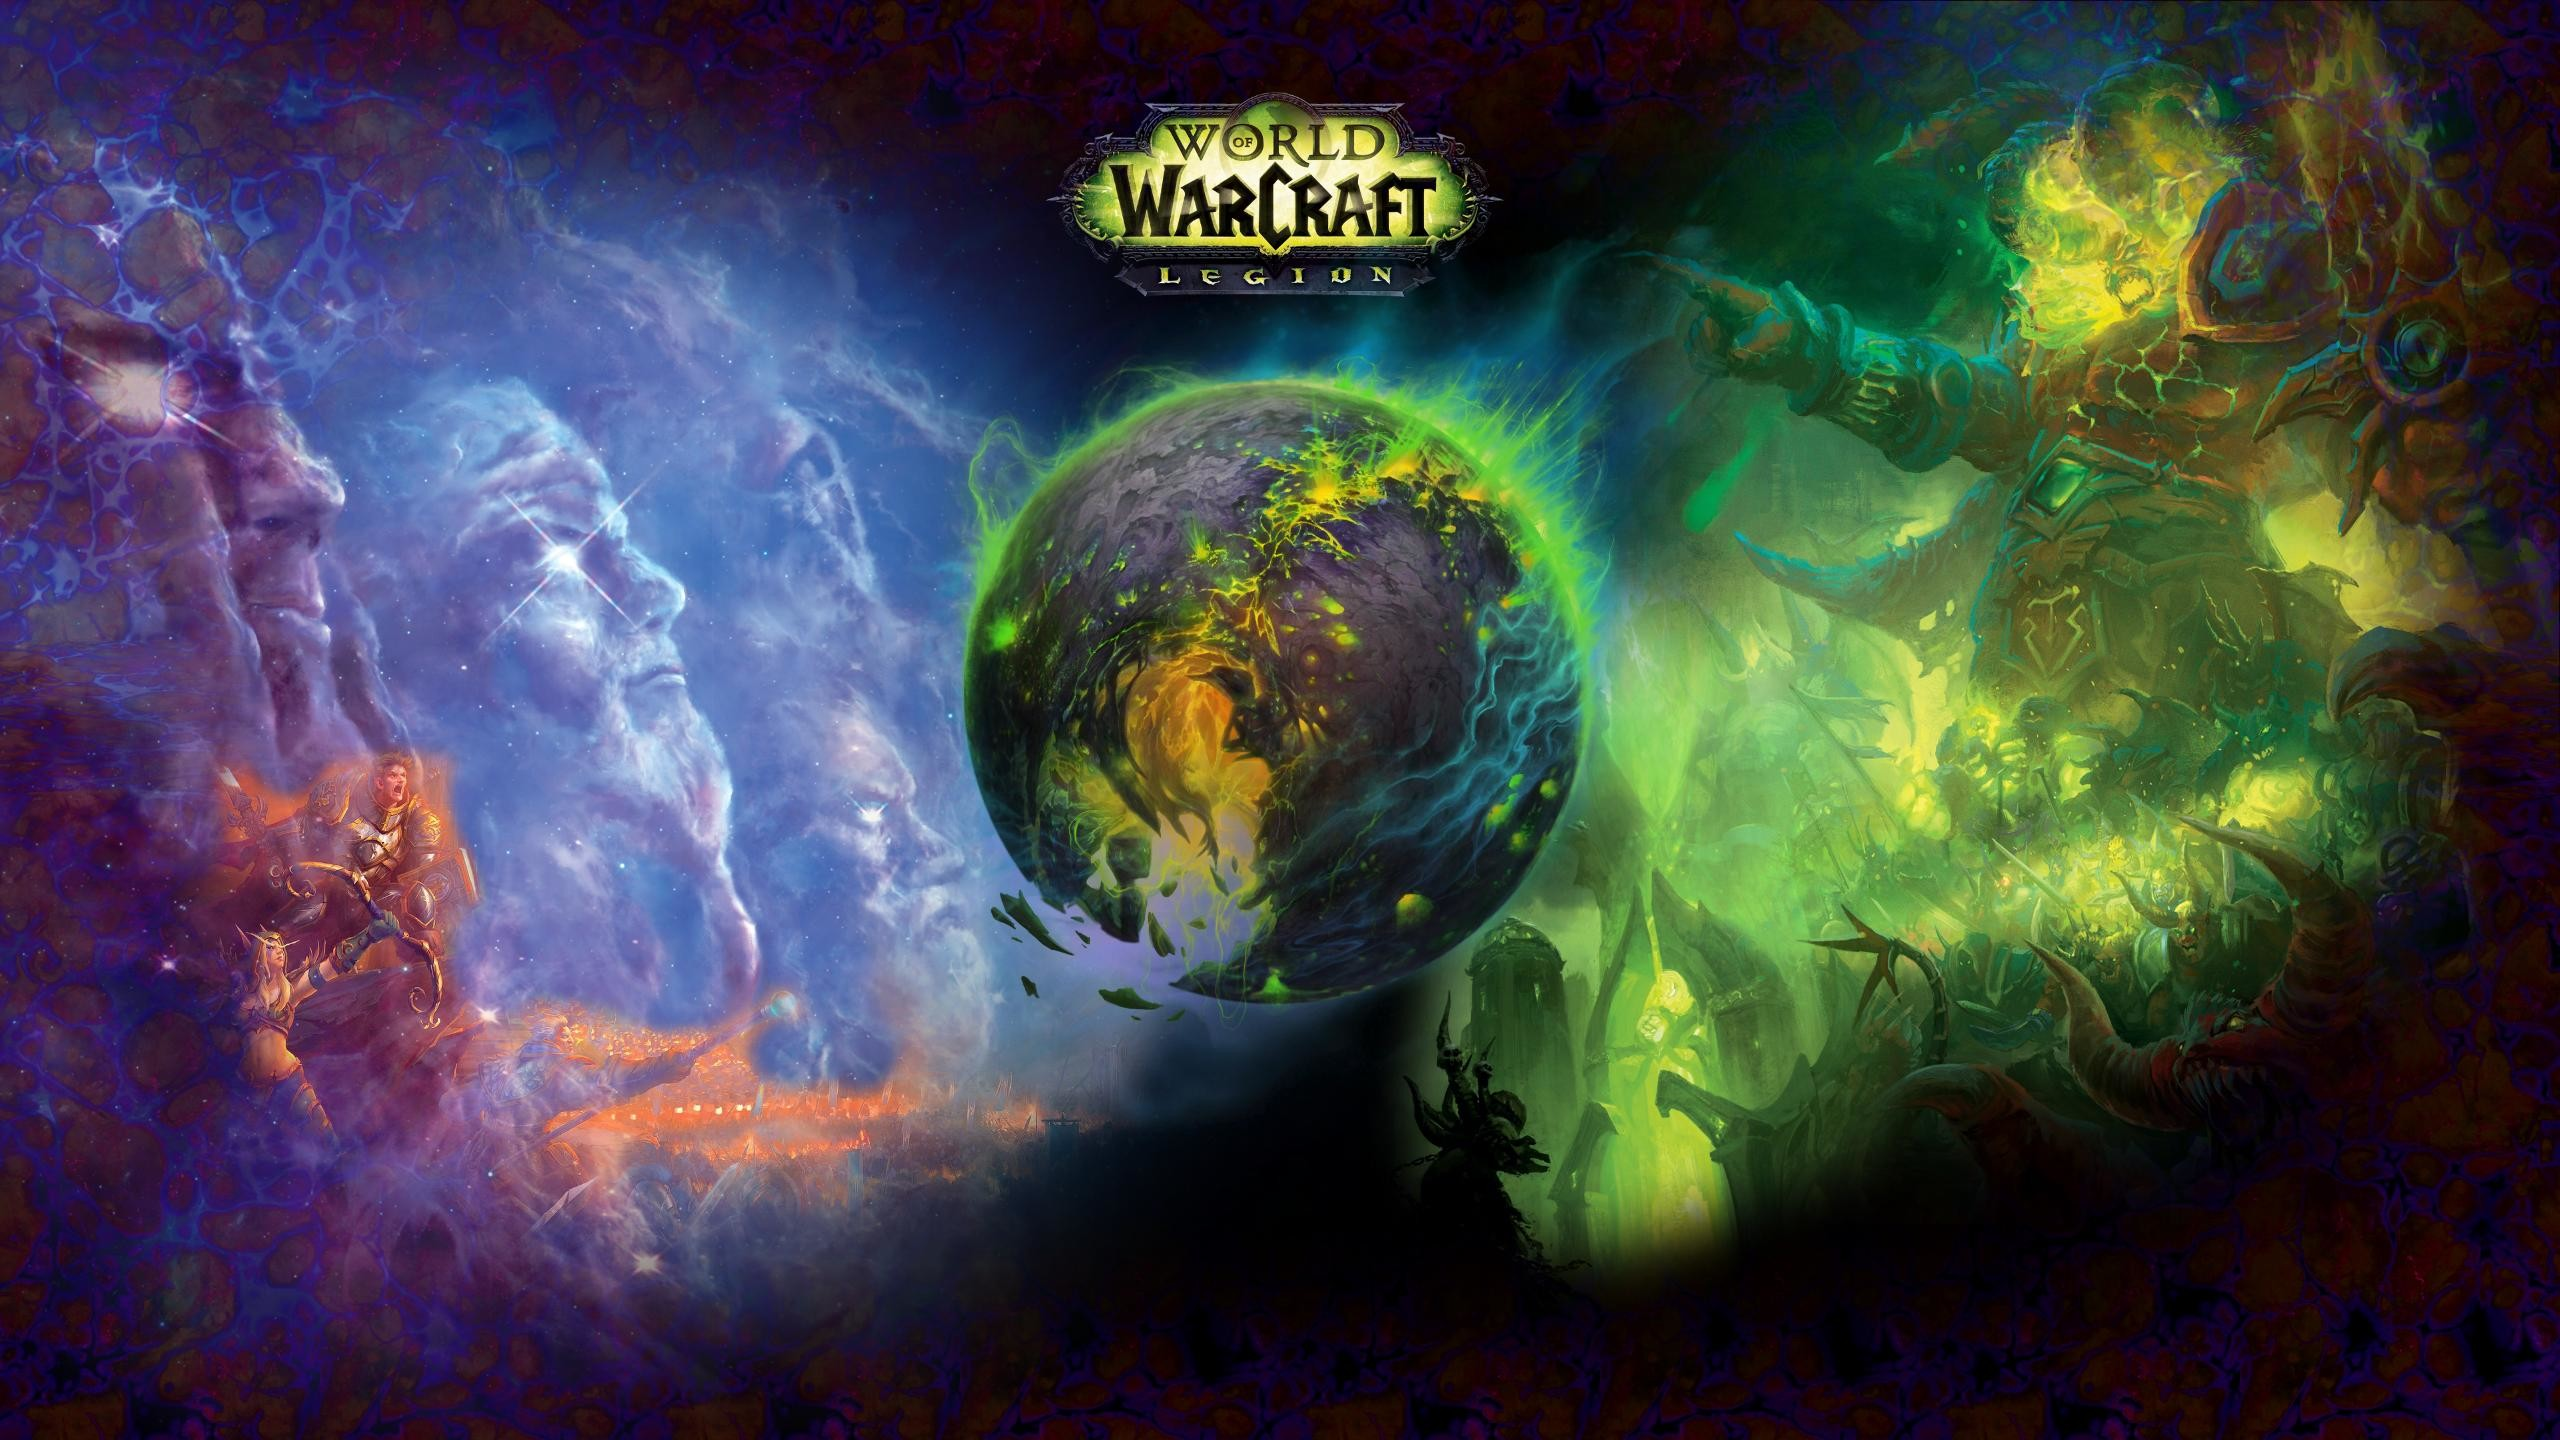 World Of Warcraft Wallpaper 2560x1440 Posted By Michelle Johnson